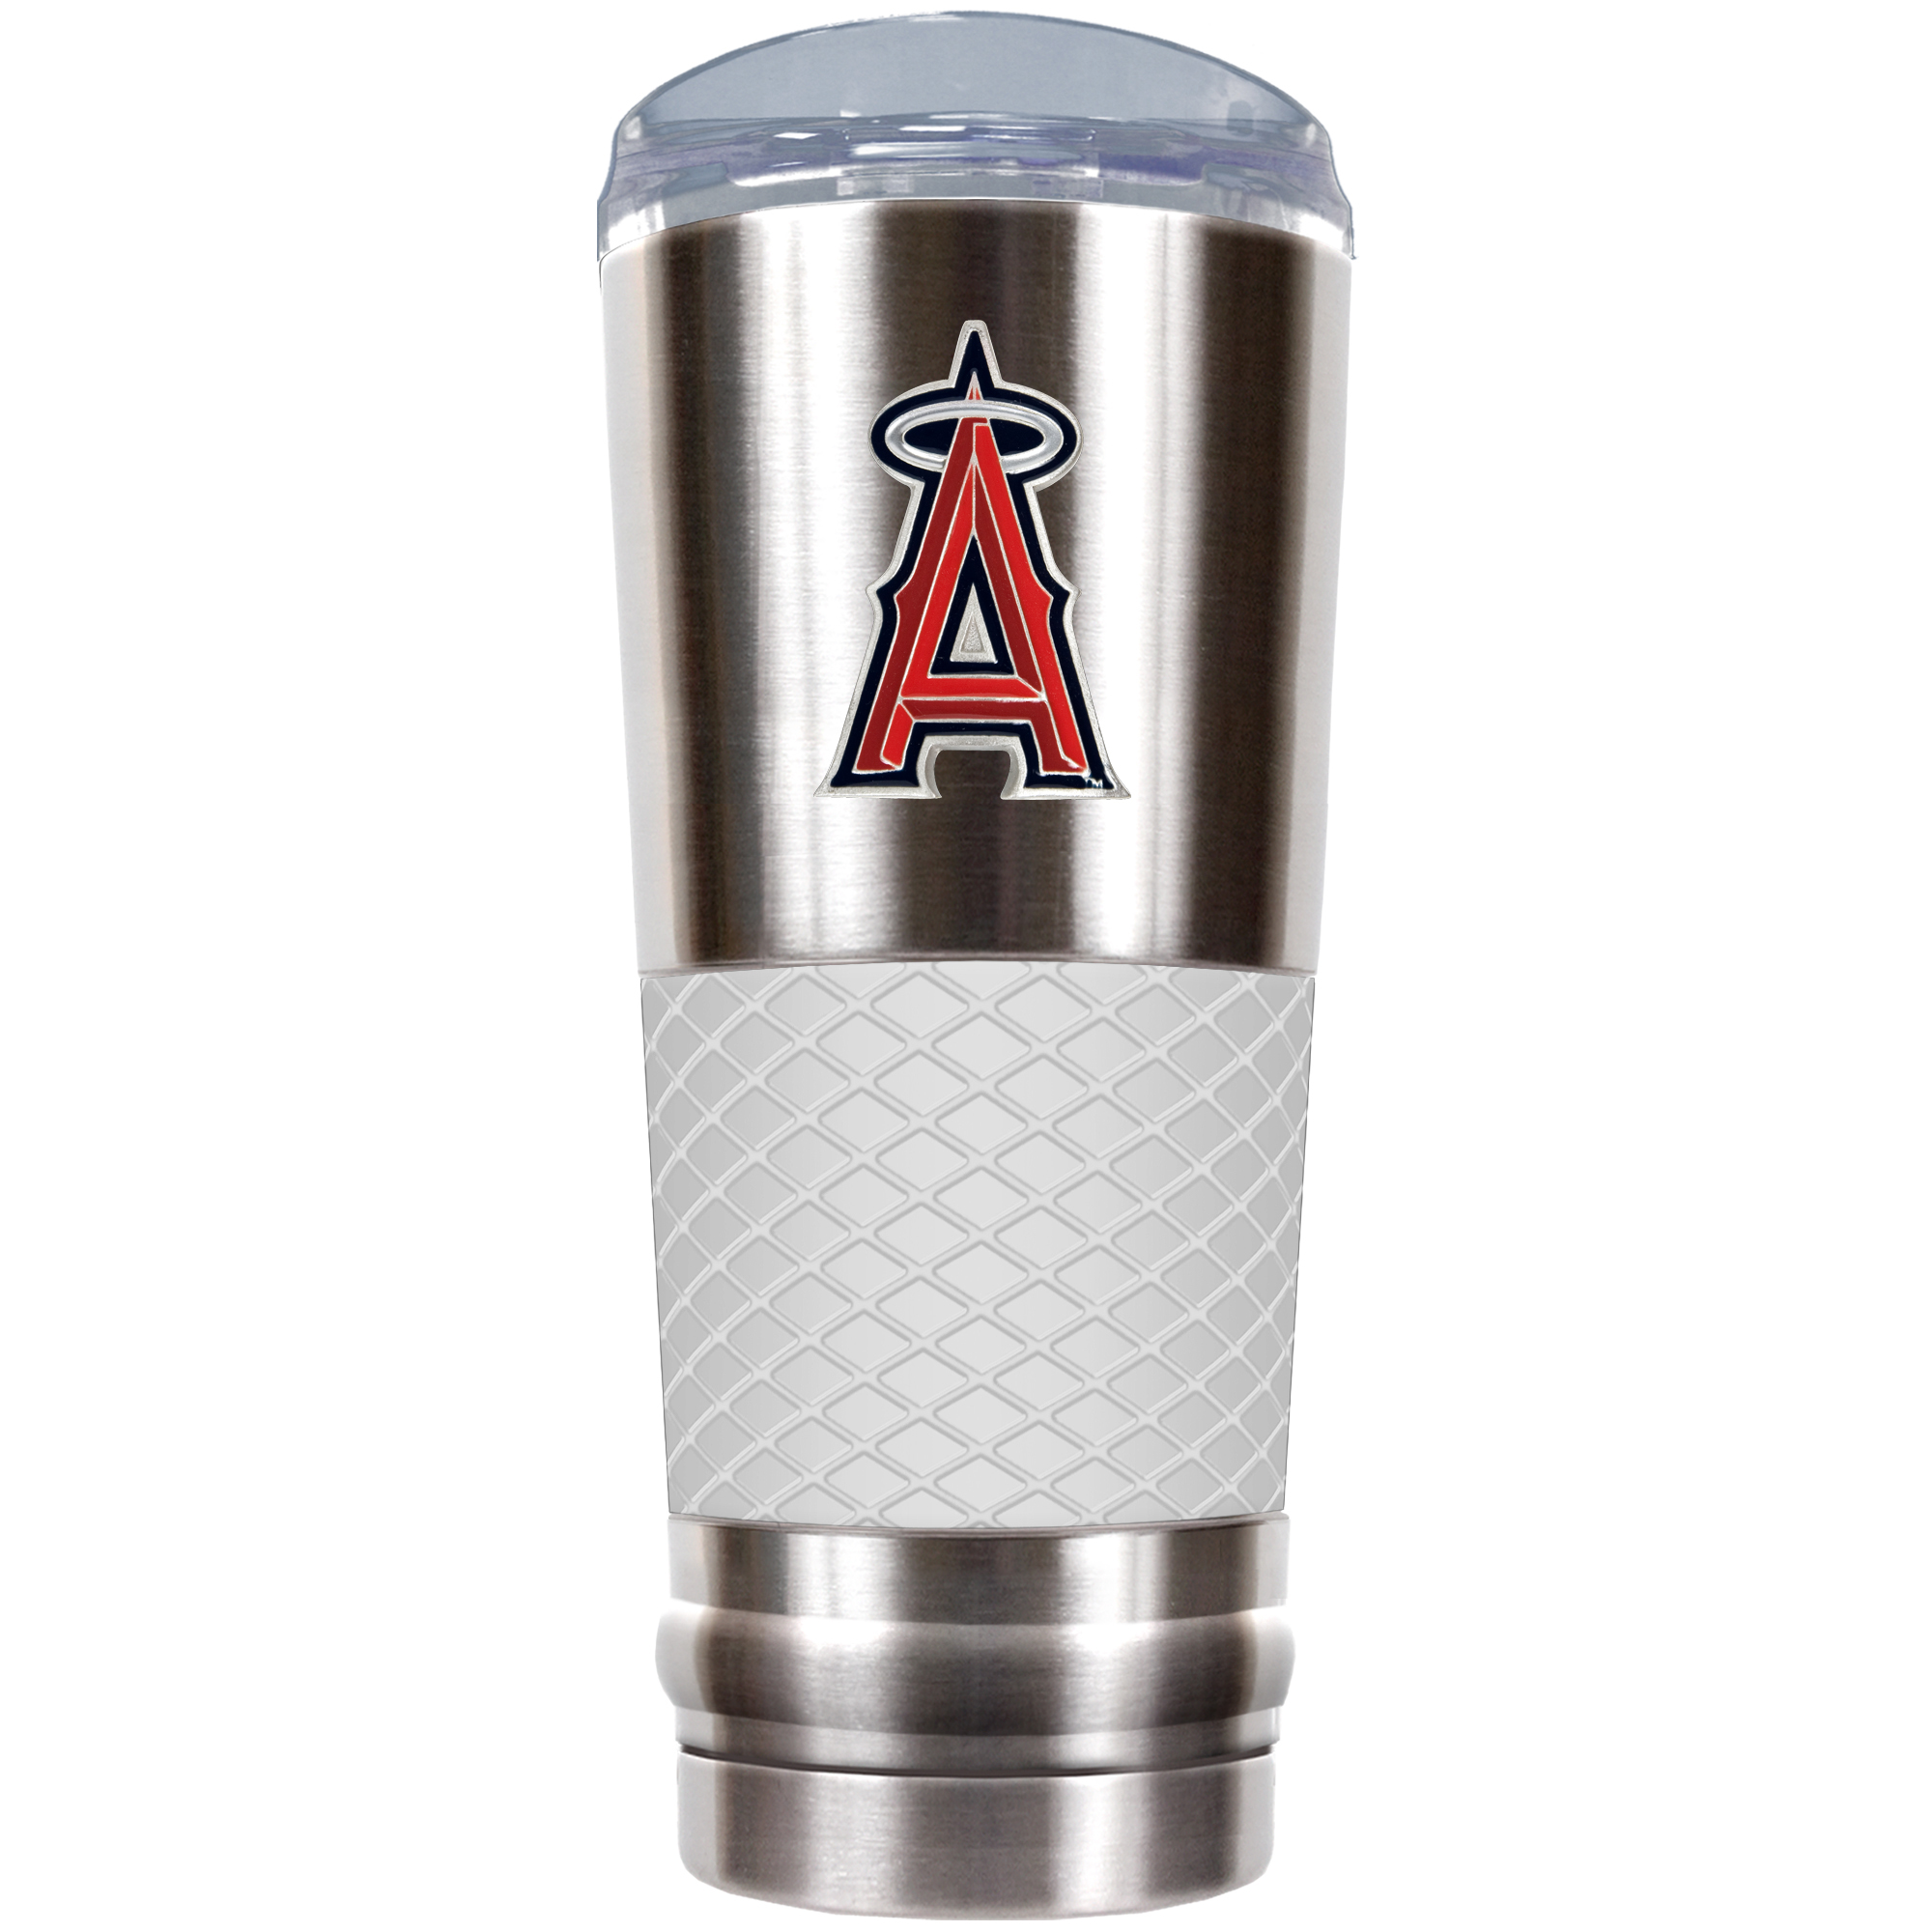 Los Angeles Angels 24oz. Draft Tumbler - White - No Size